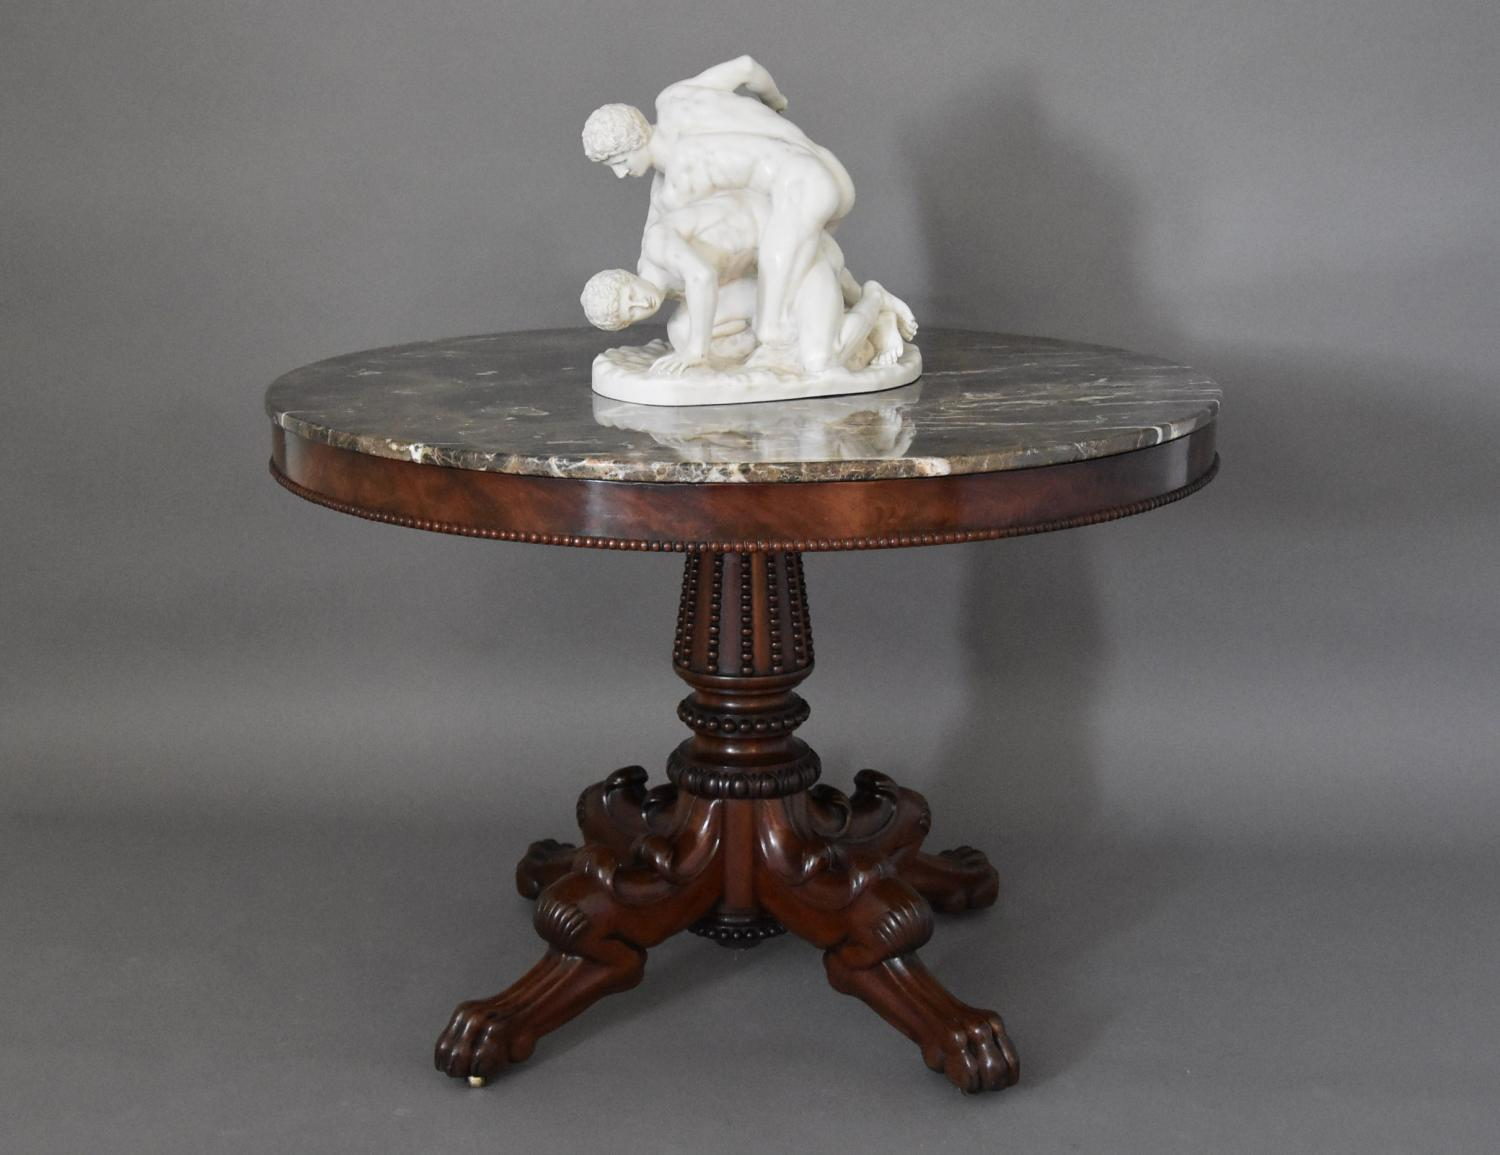 French 19th century mahogany gueridon table